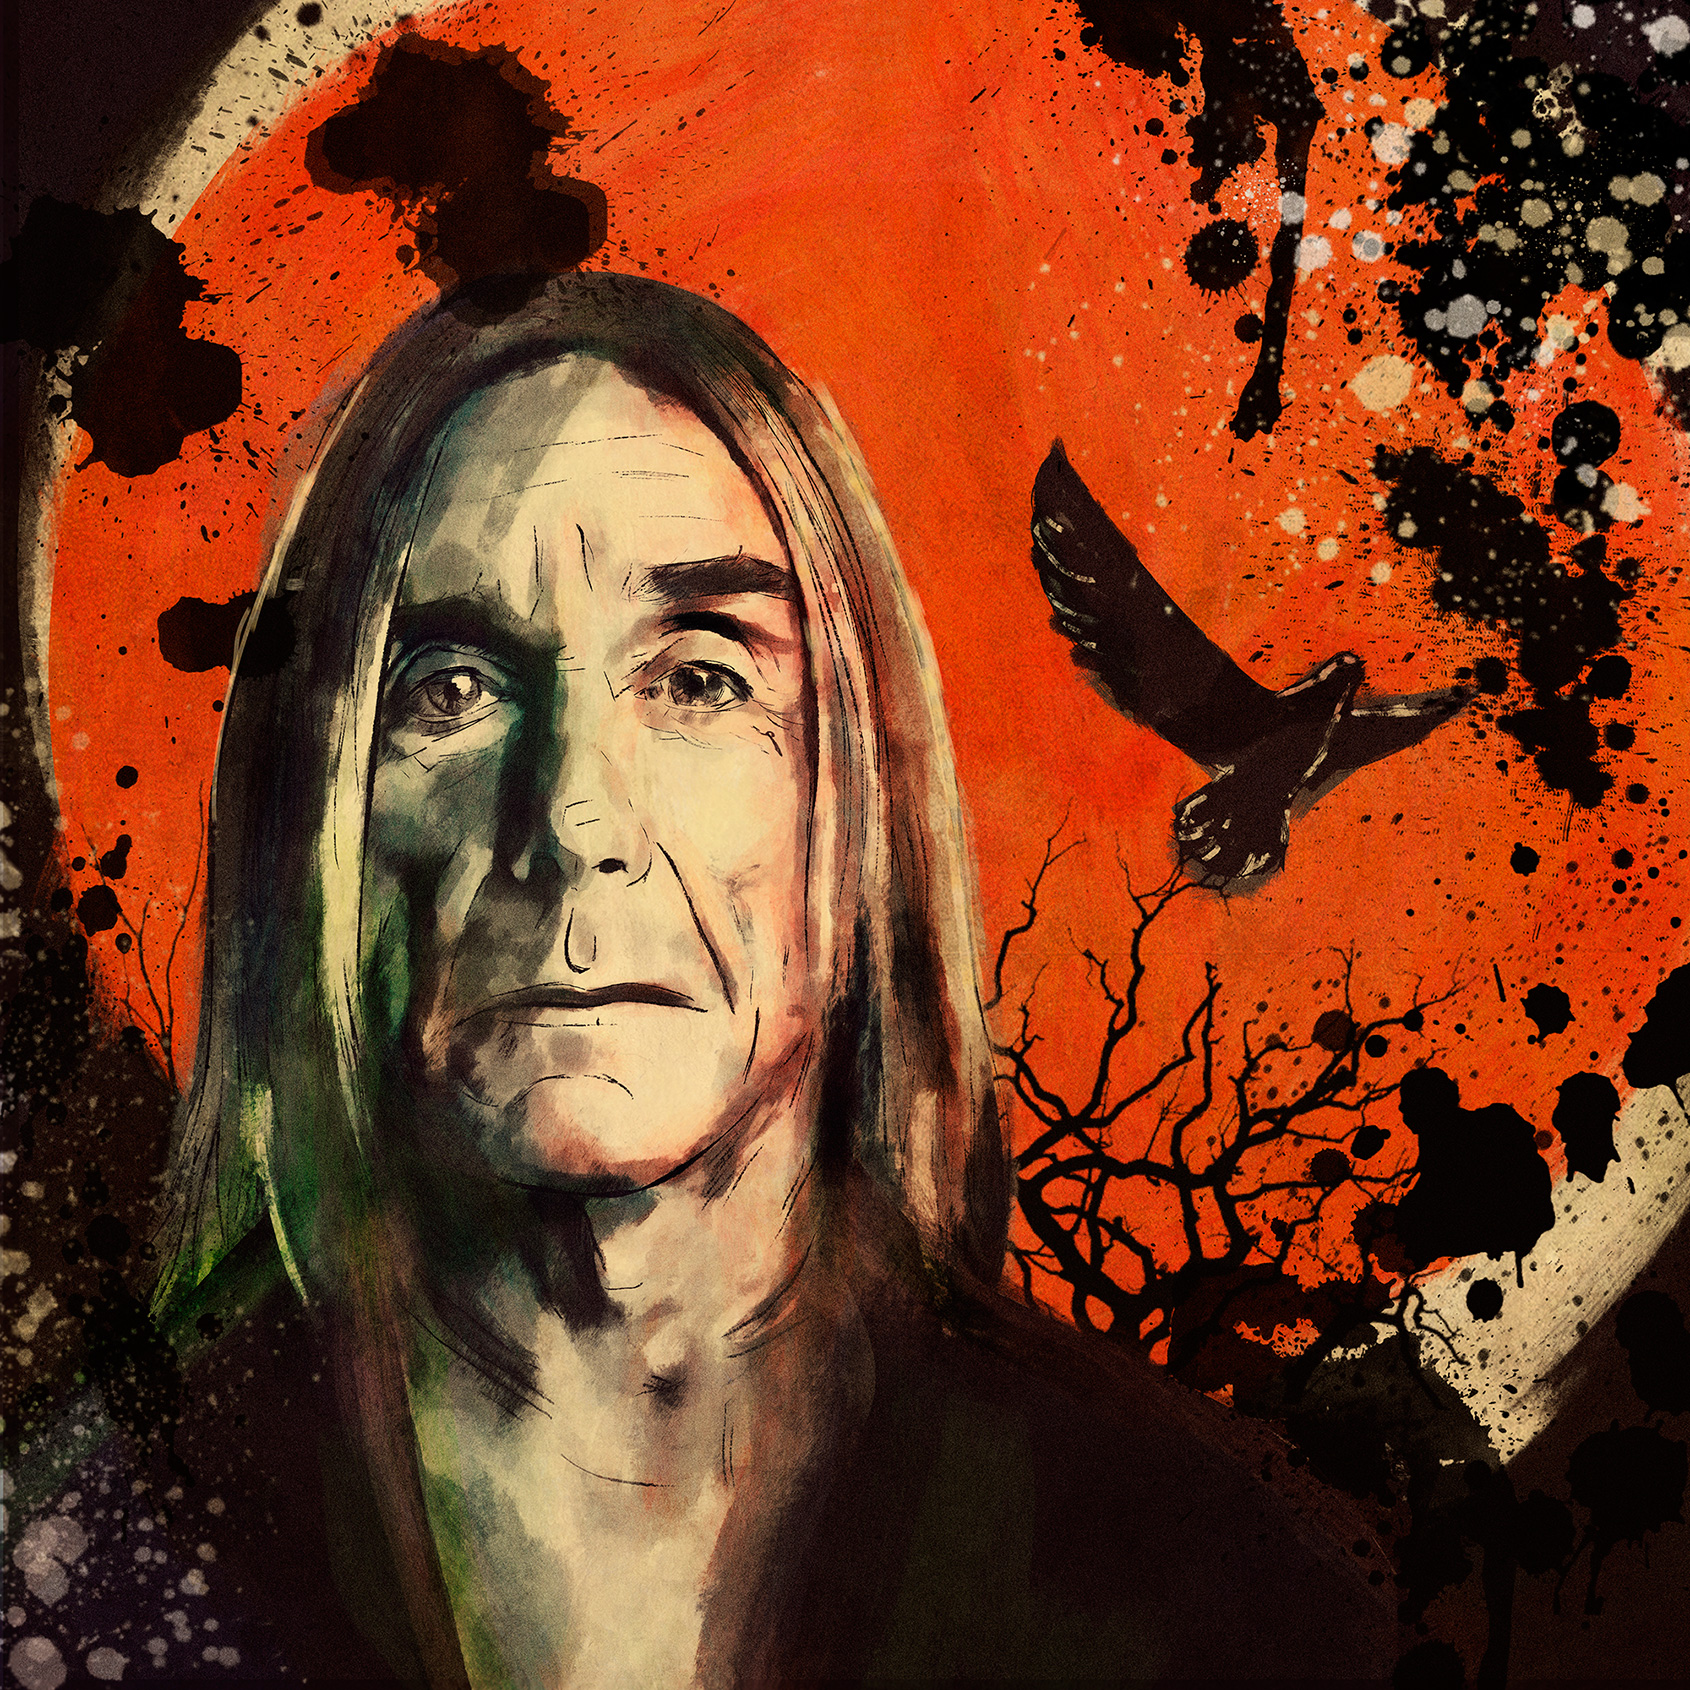 iggy_pop_jorge_gago_illustration